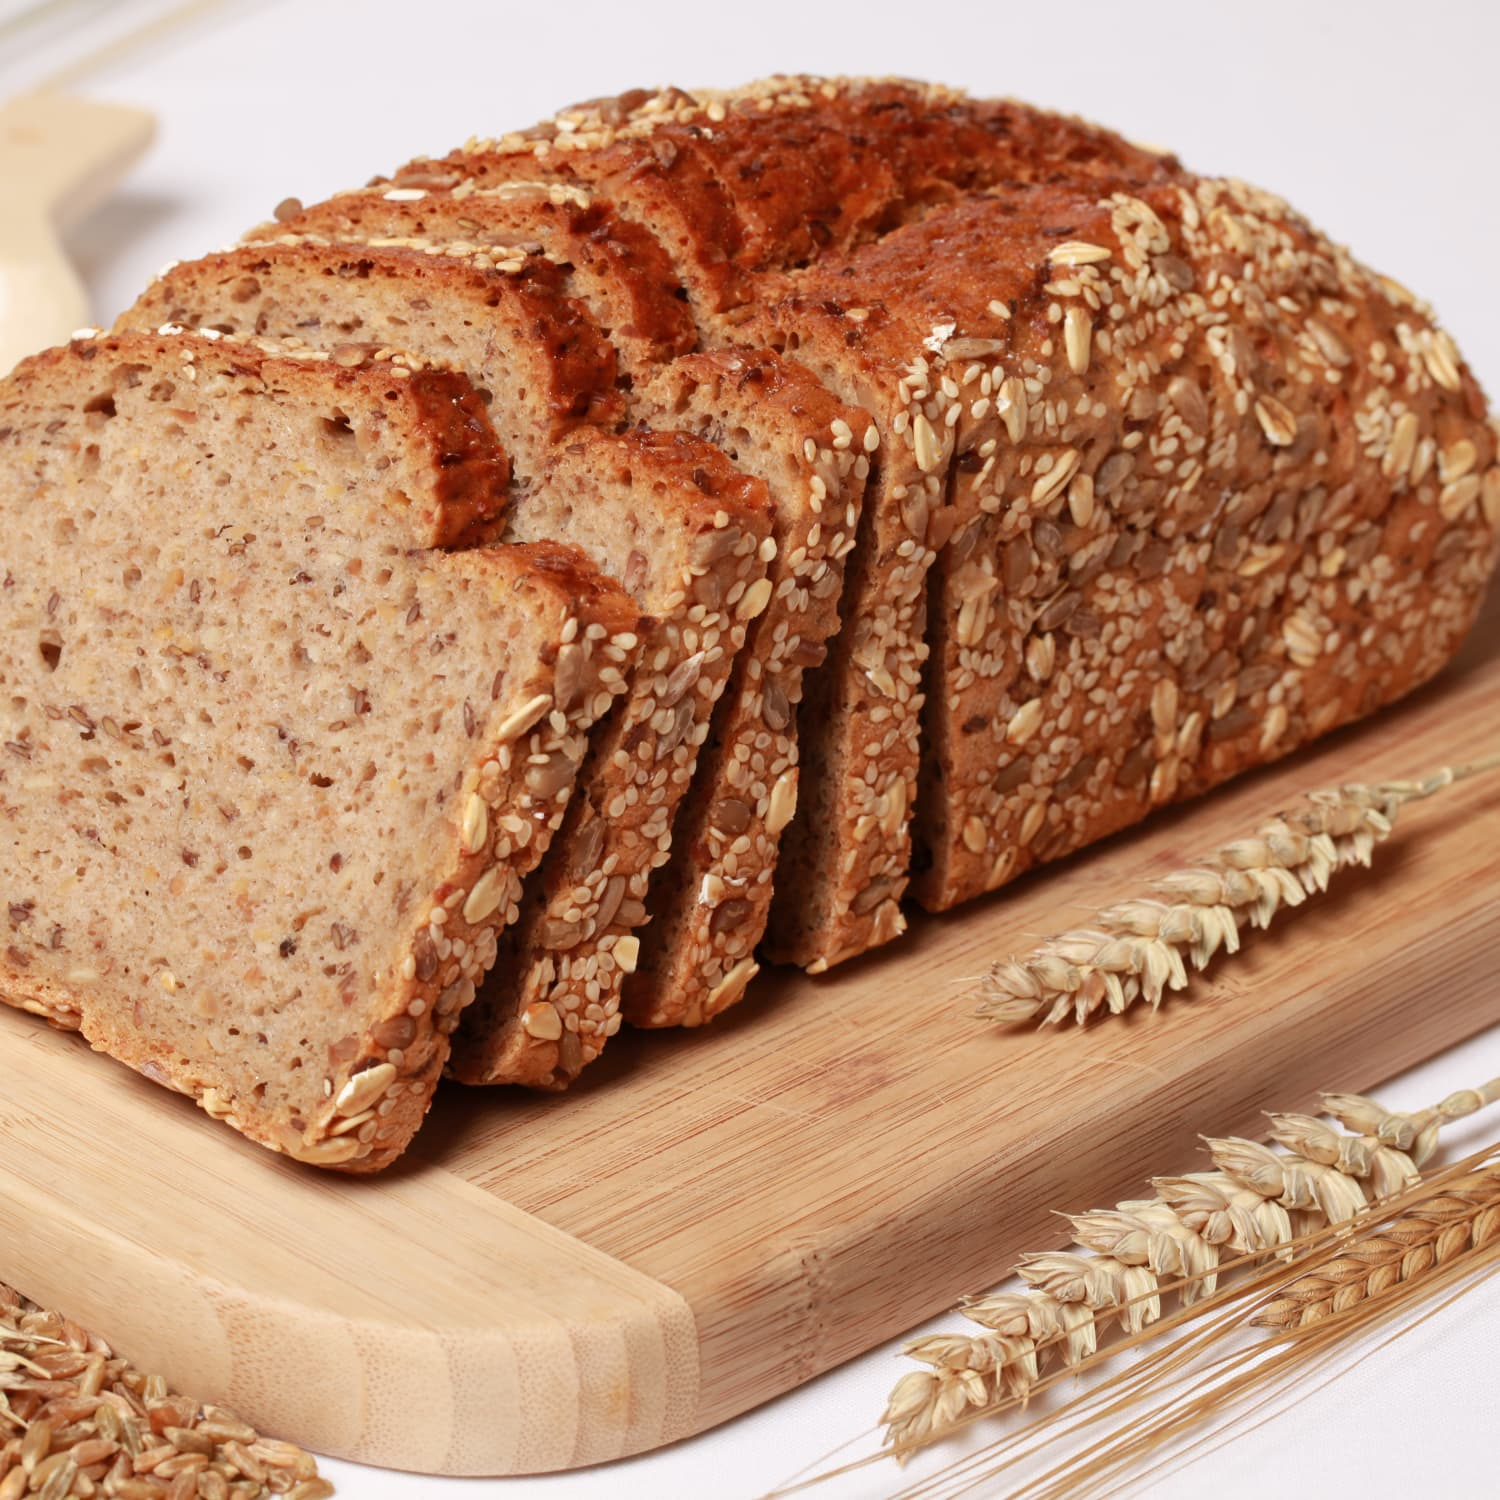 You Need This Bread!